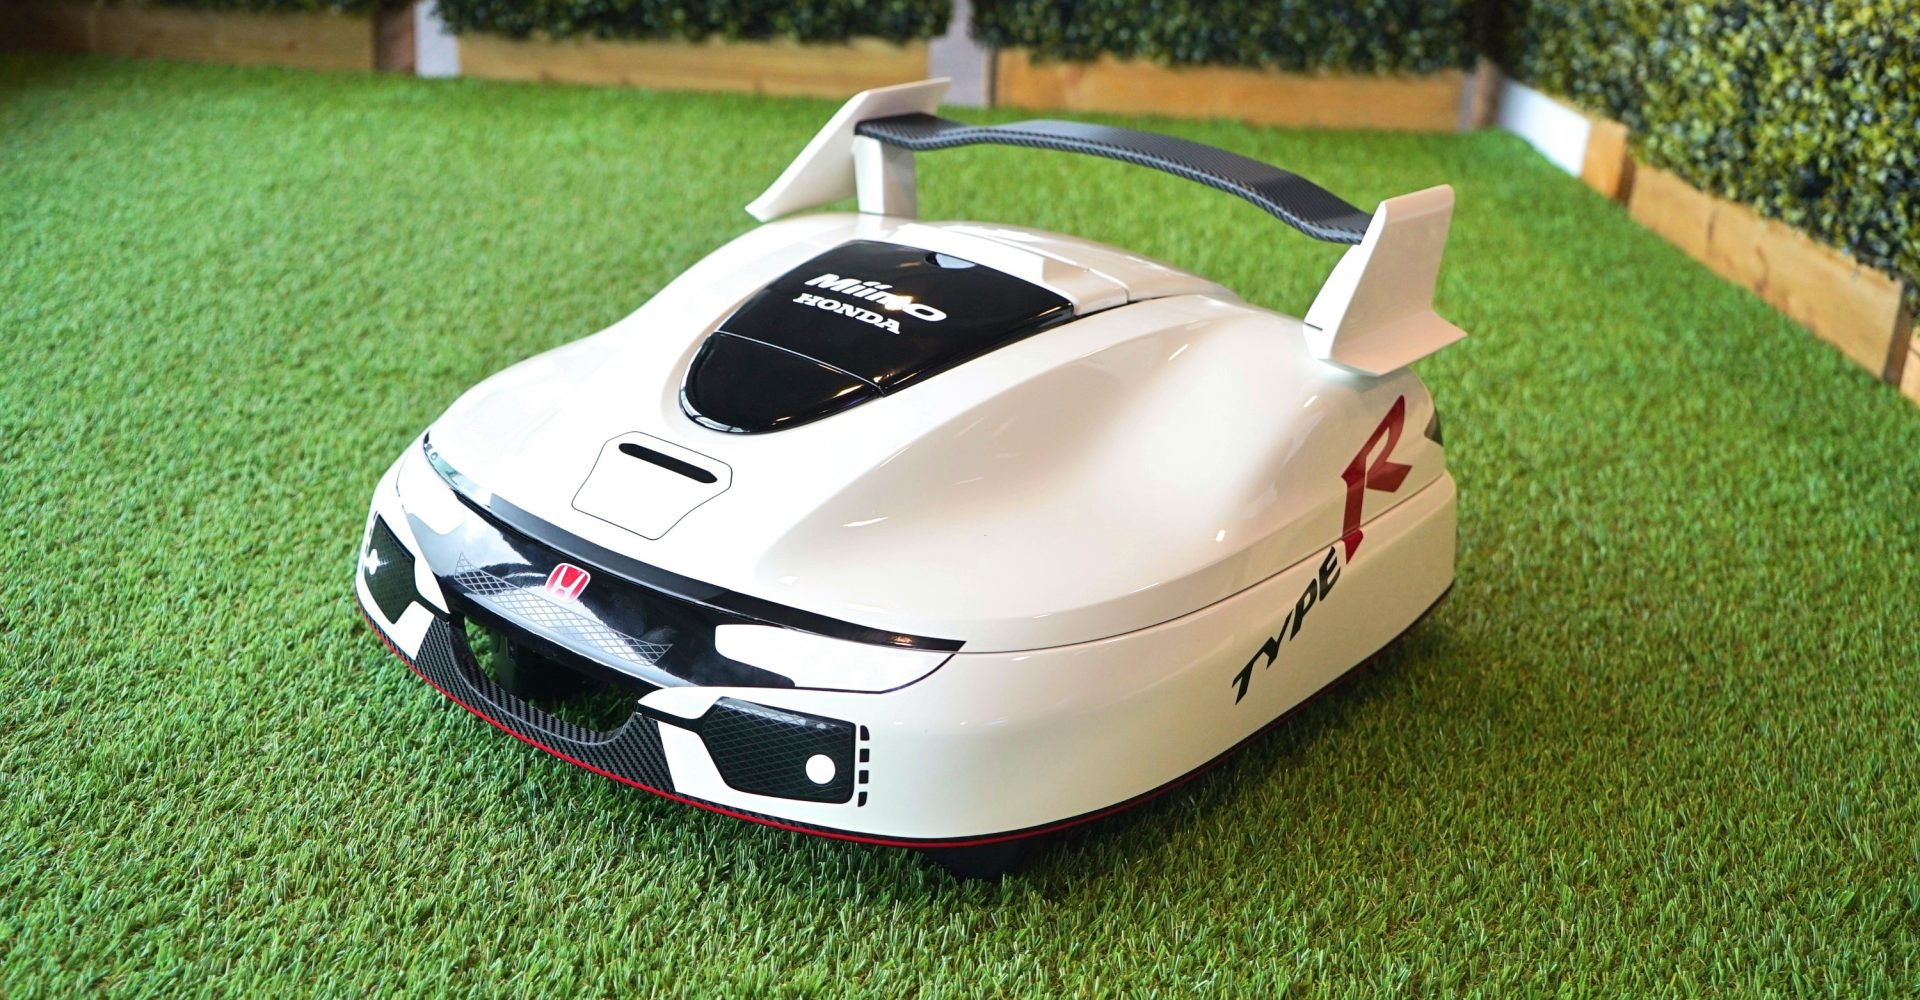 This Honda lawnmower is the coolest way to cut grass